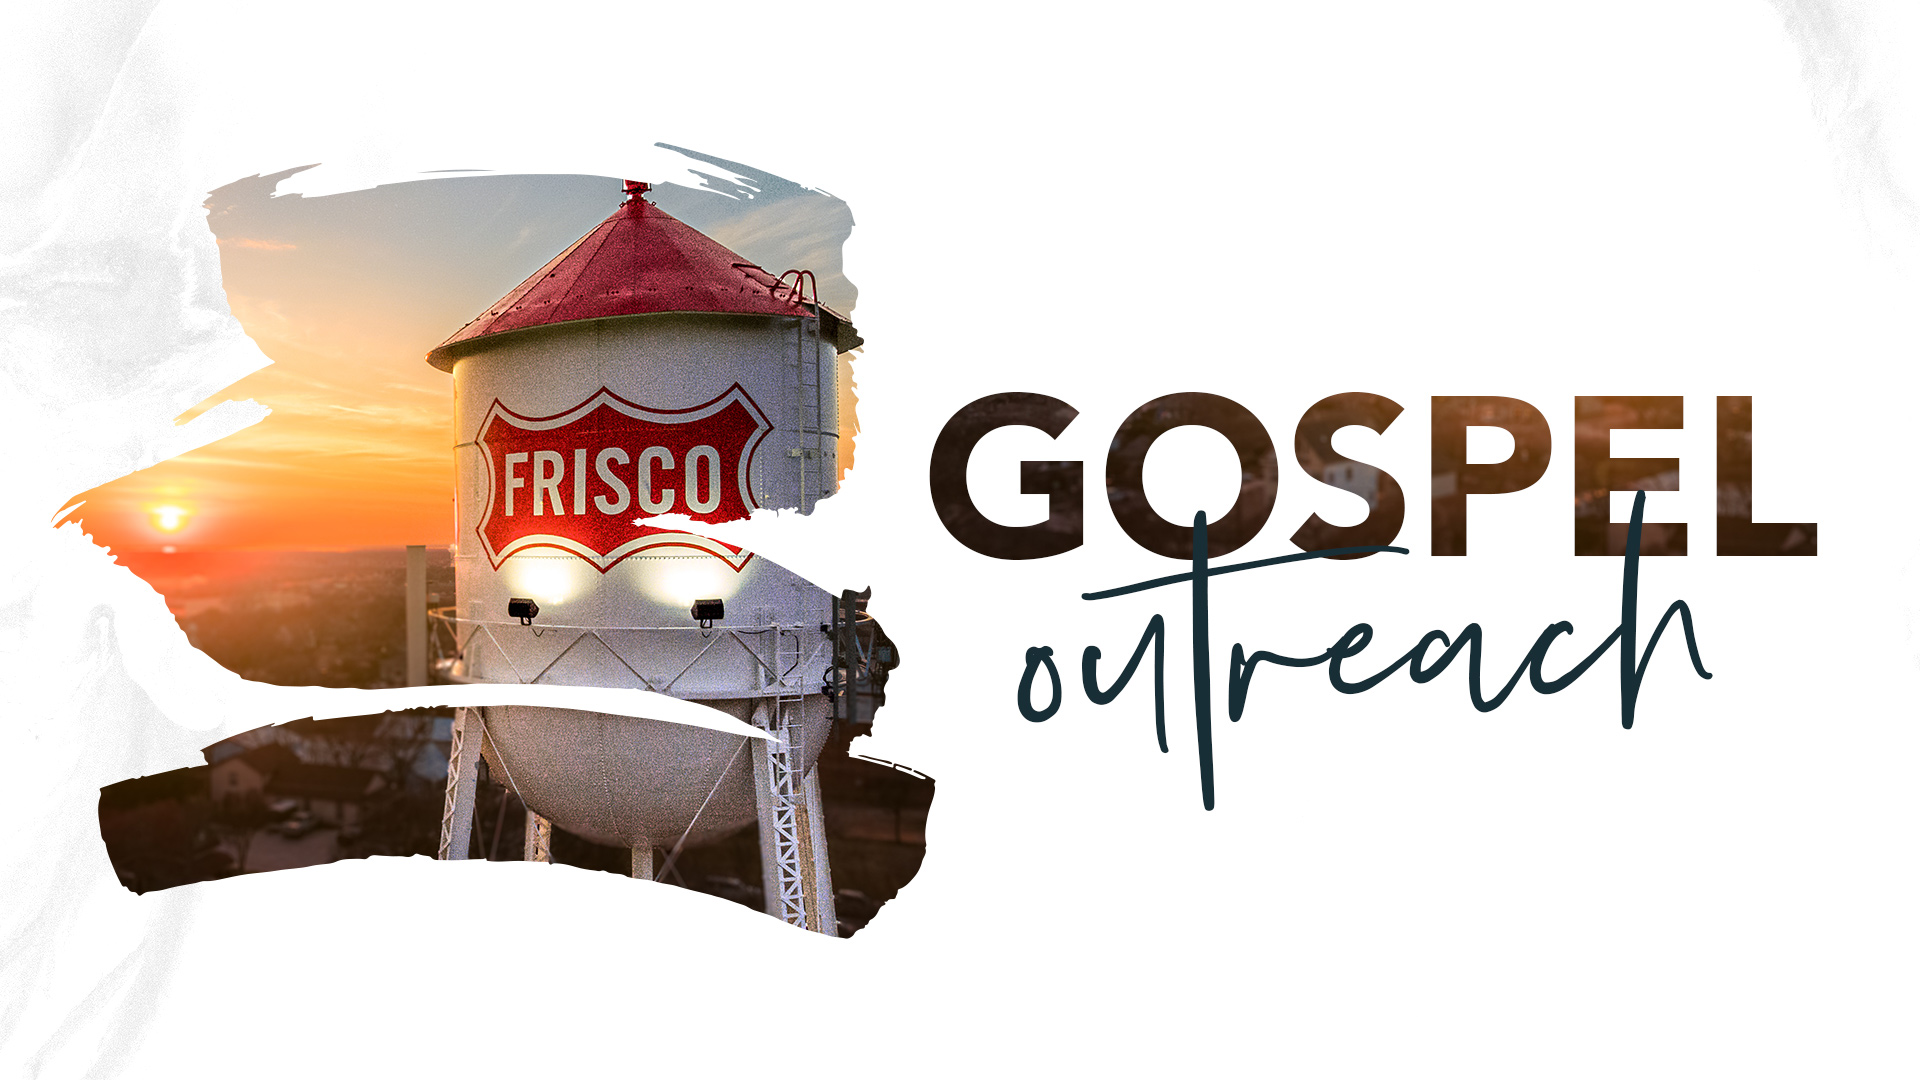 Gospel_Outreach_Wide